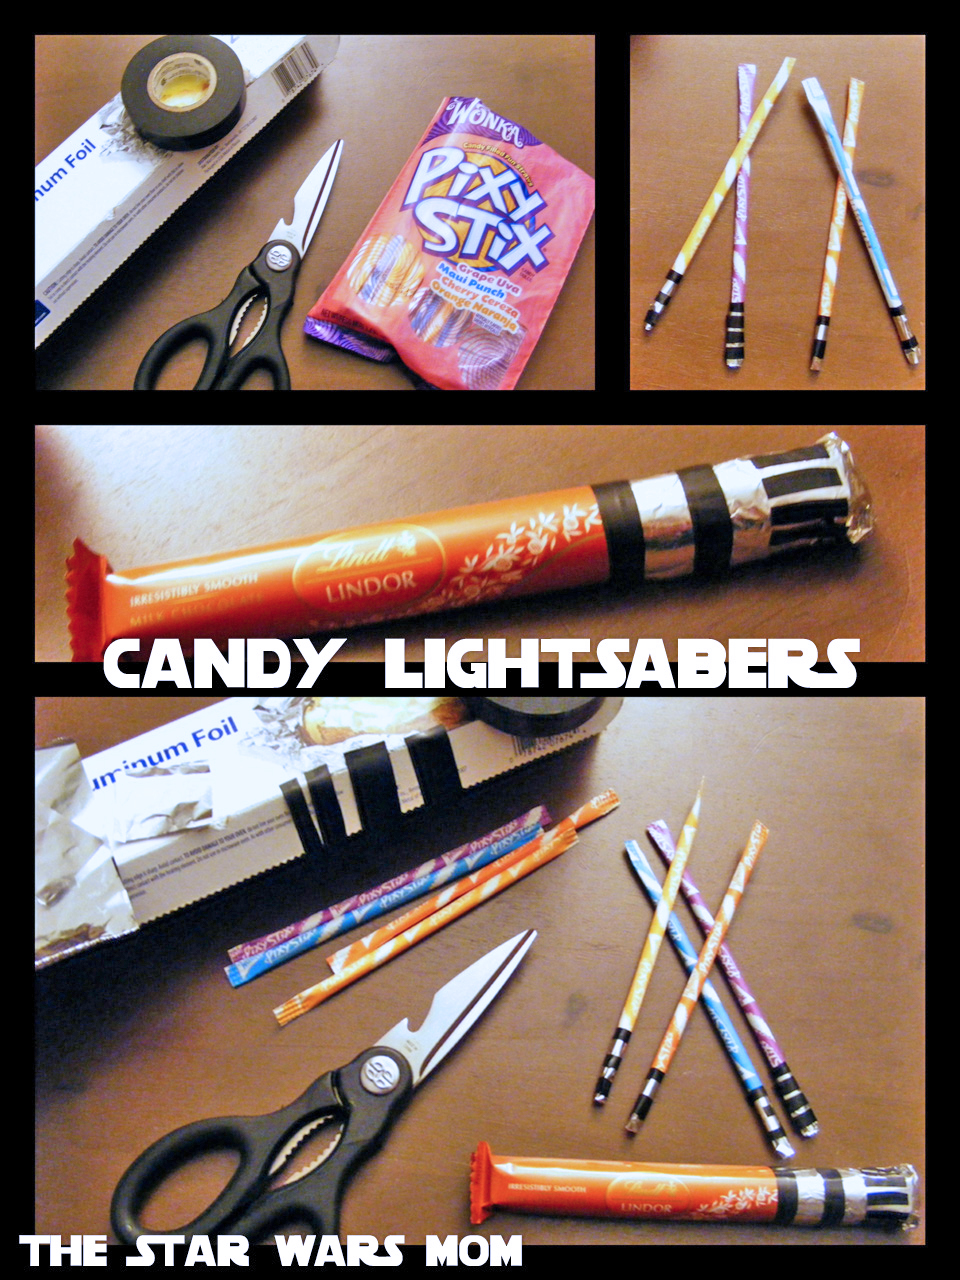 star wars diy candy lightsabers the star wars mom parties recipes crafts and printables. Black Bedroom Furniture Sets. Home Design Ideas